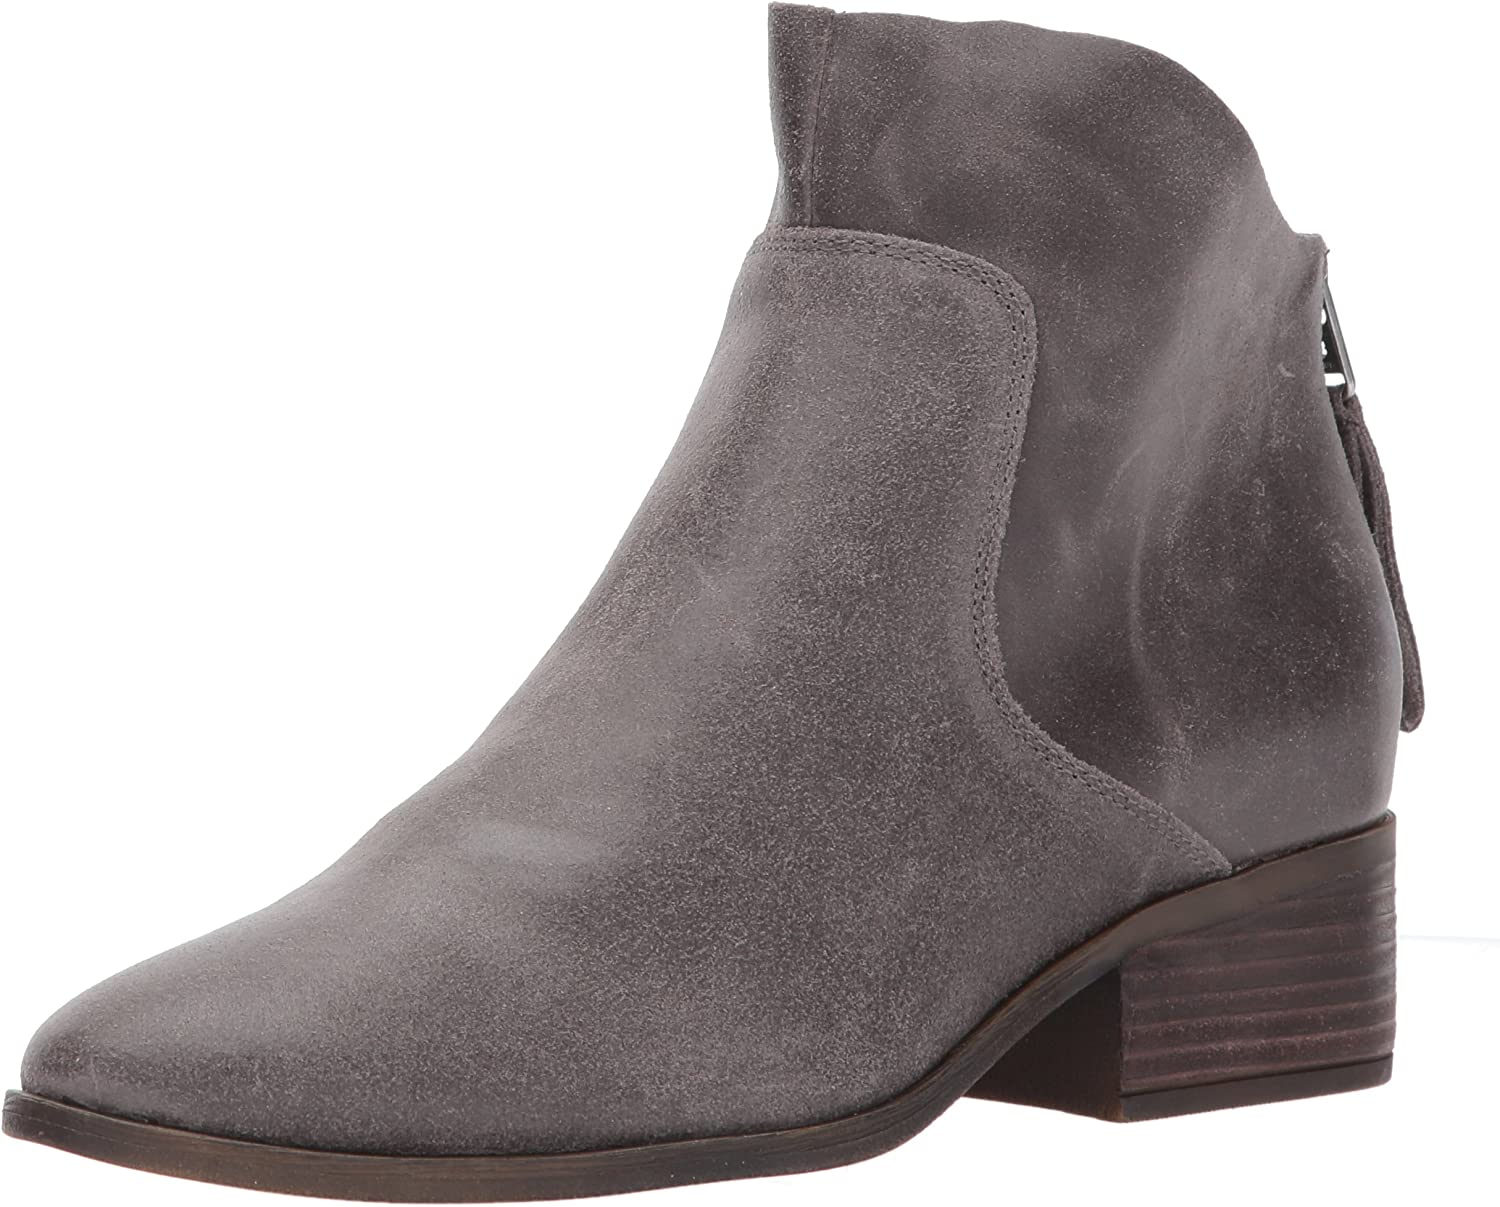 Lucky Womens Lk-lahela Fashion Boot